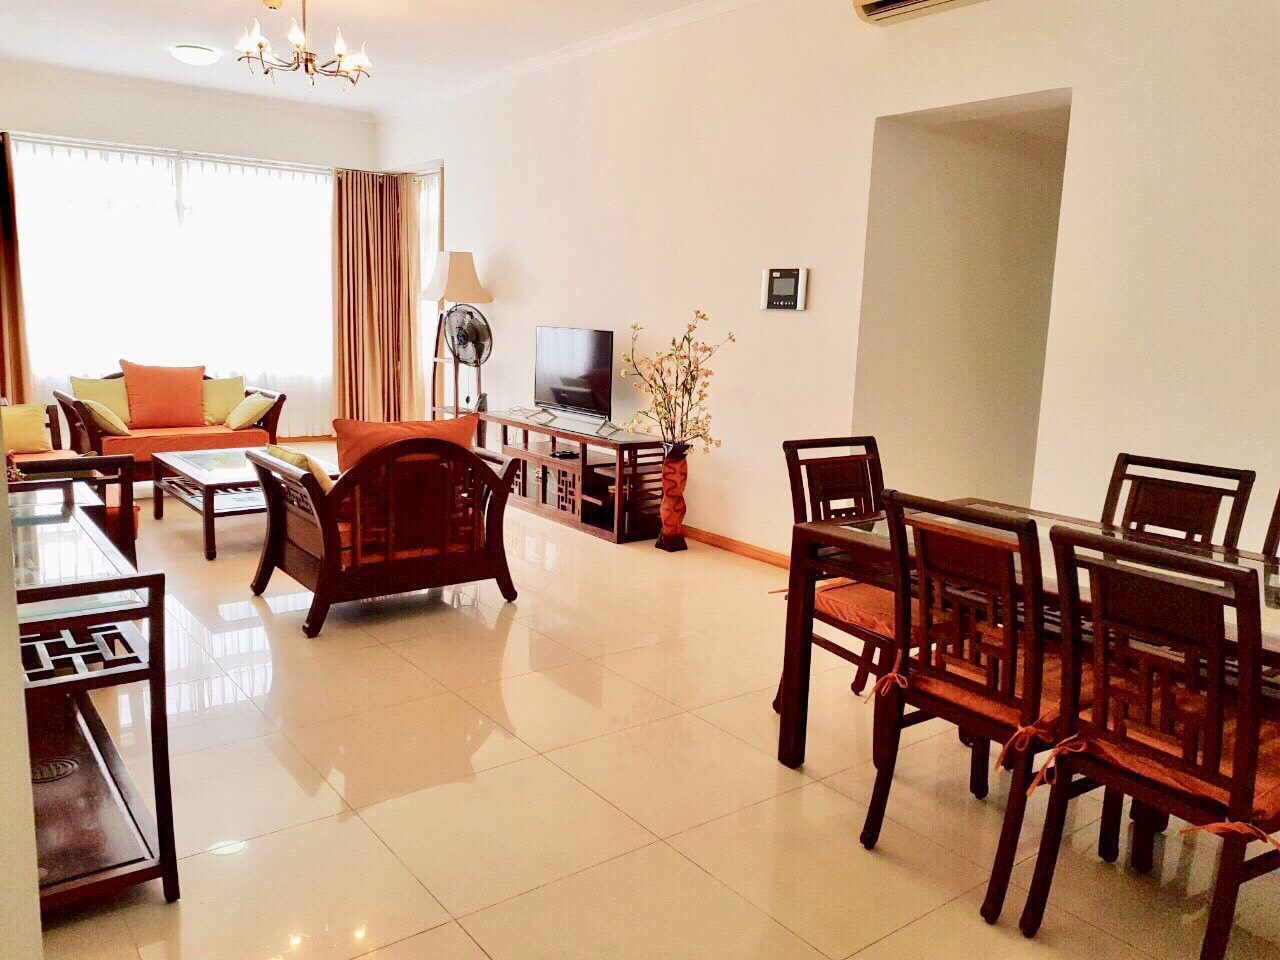 Apartment for rent BT101202 (4)